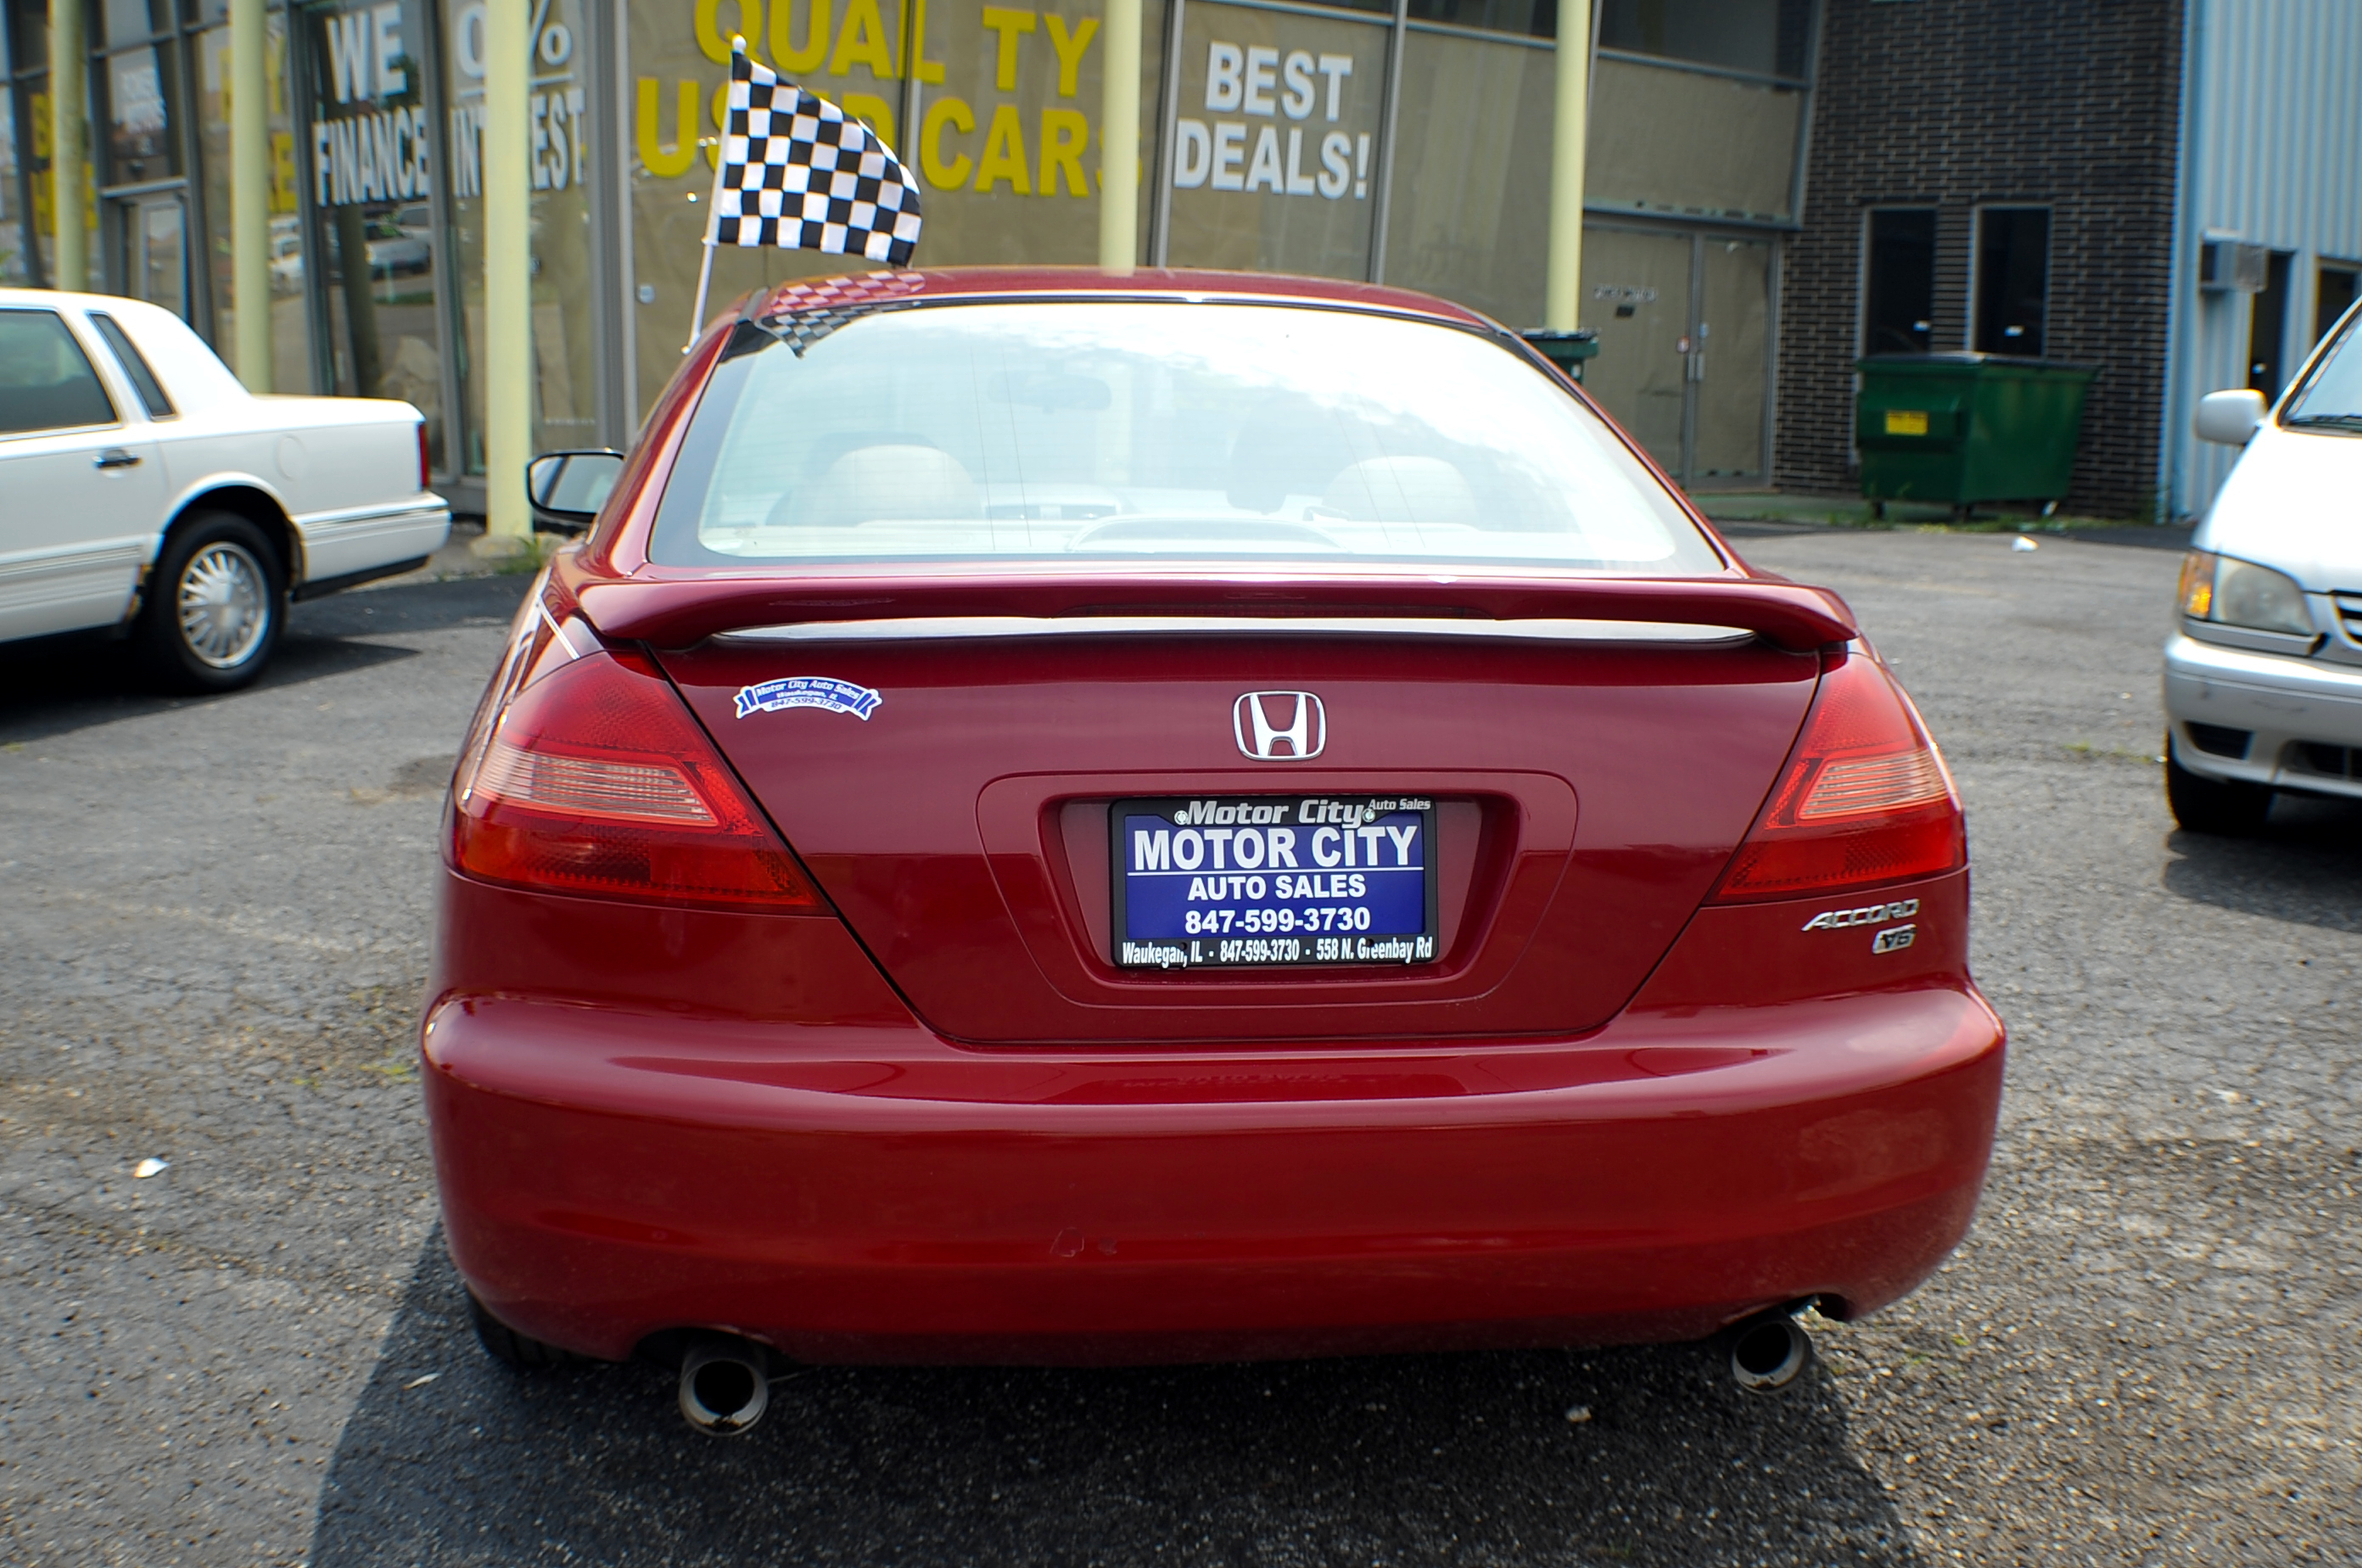 2003 Honda Accord Red V6 Sport Coupe Used Car Sale Gurnee Waukegan